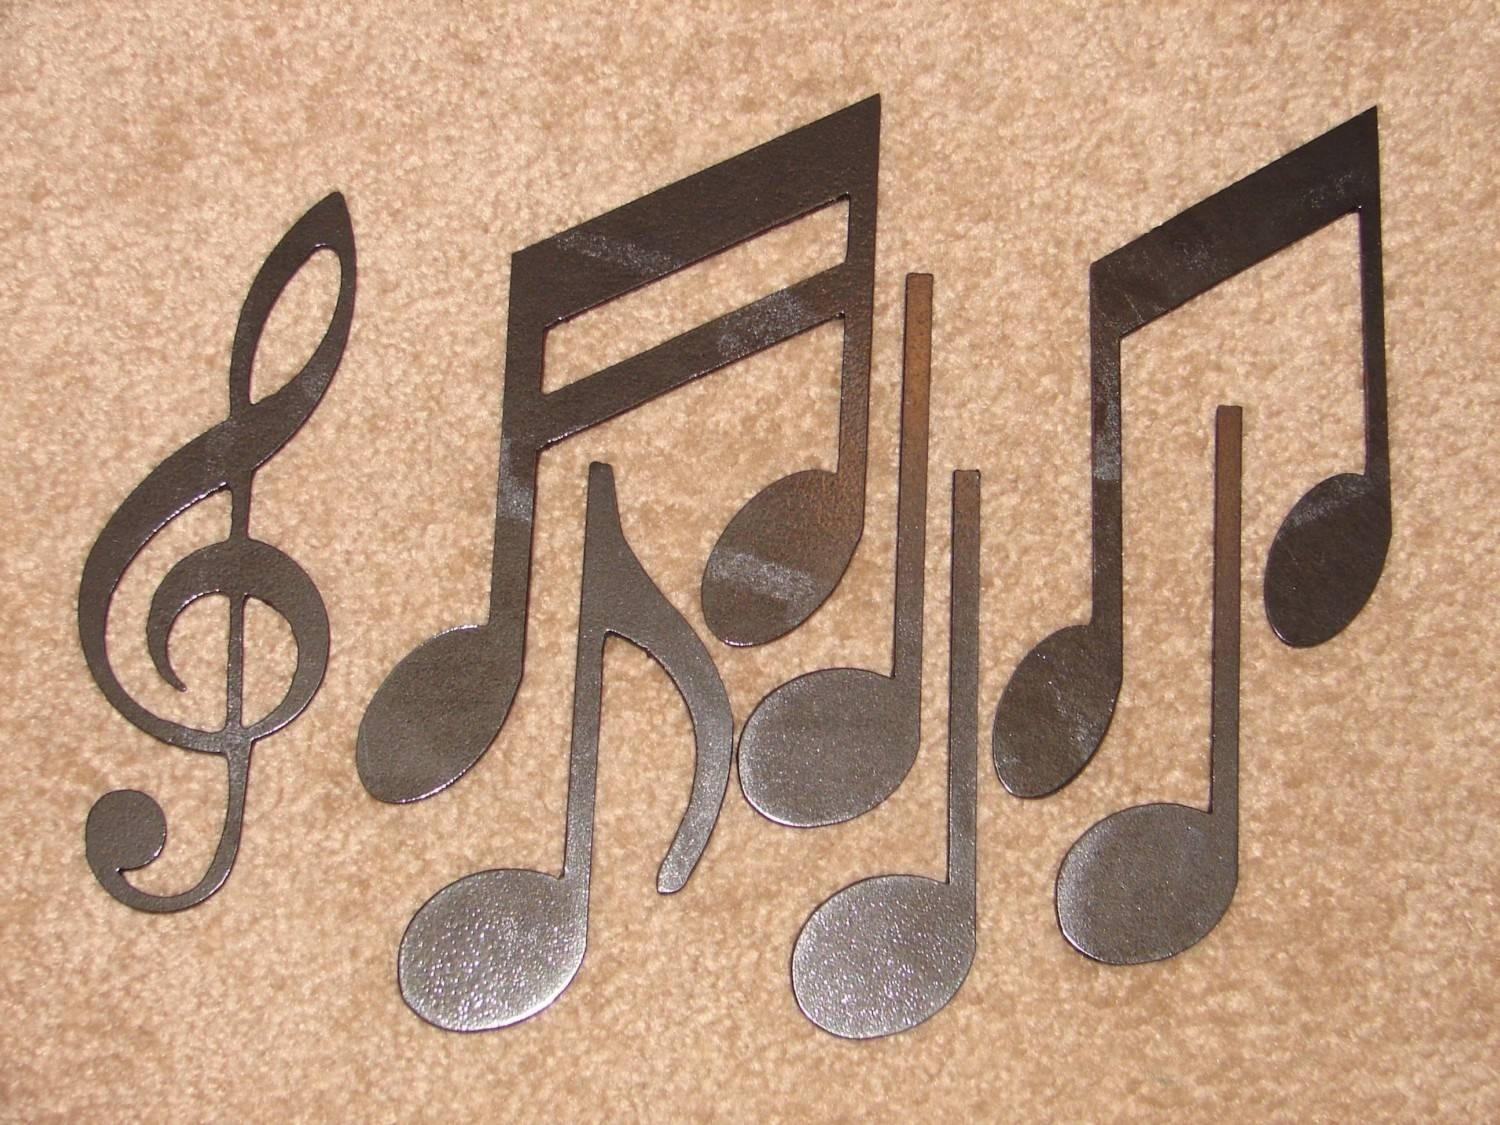 Metal Wall Art Decor Music Notes Musical Note Patio Inside Most Up To Date Music Metal Wall Art (View 8 of 20)